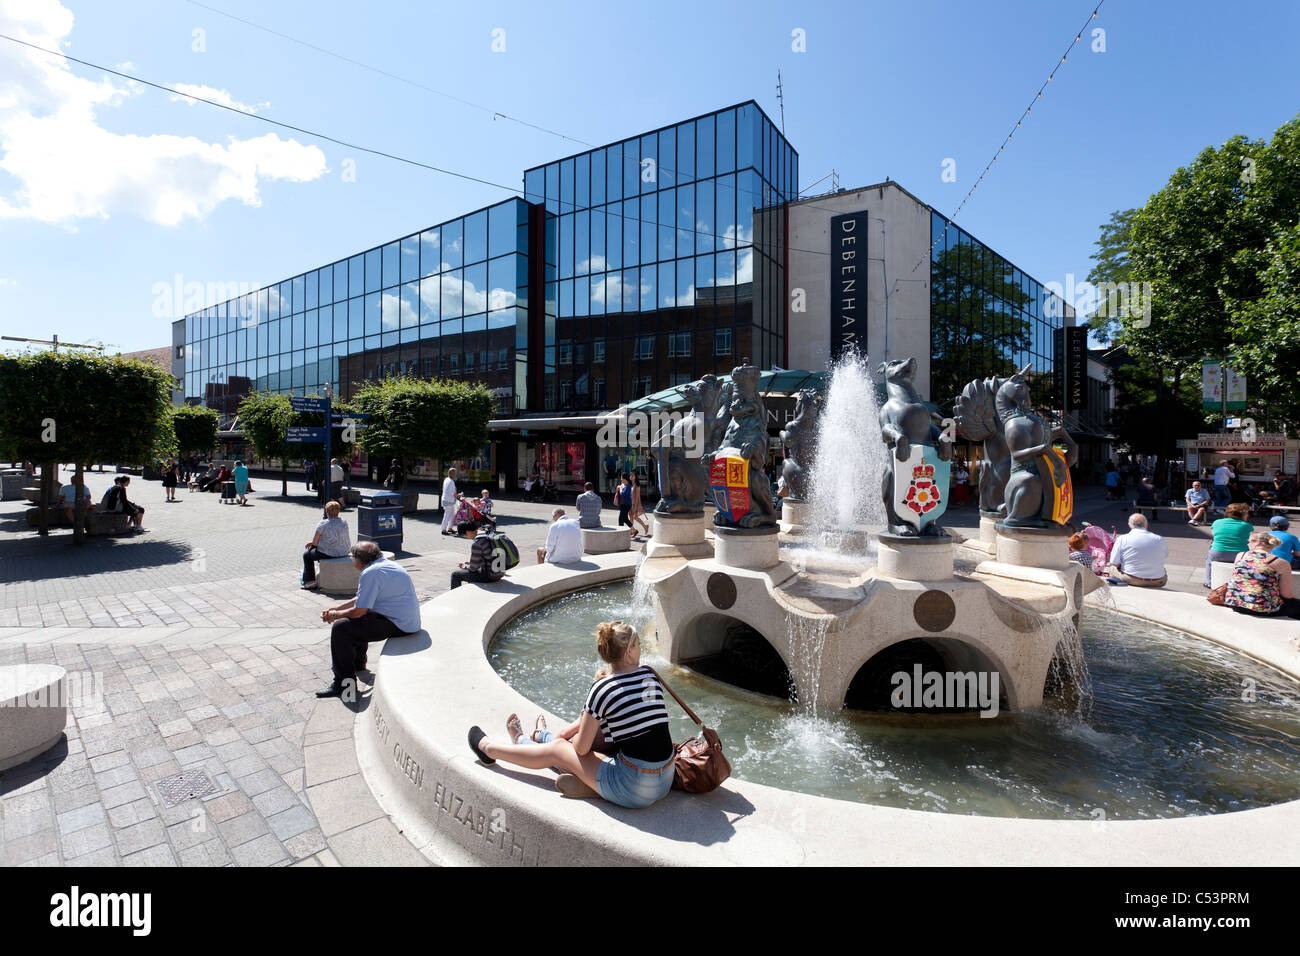 Portsmouth town centre commercial road shopping area with Queen Elizabeth Fountain. - Stock Image